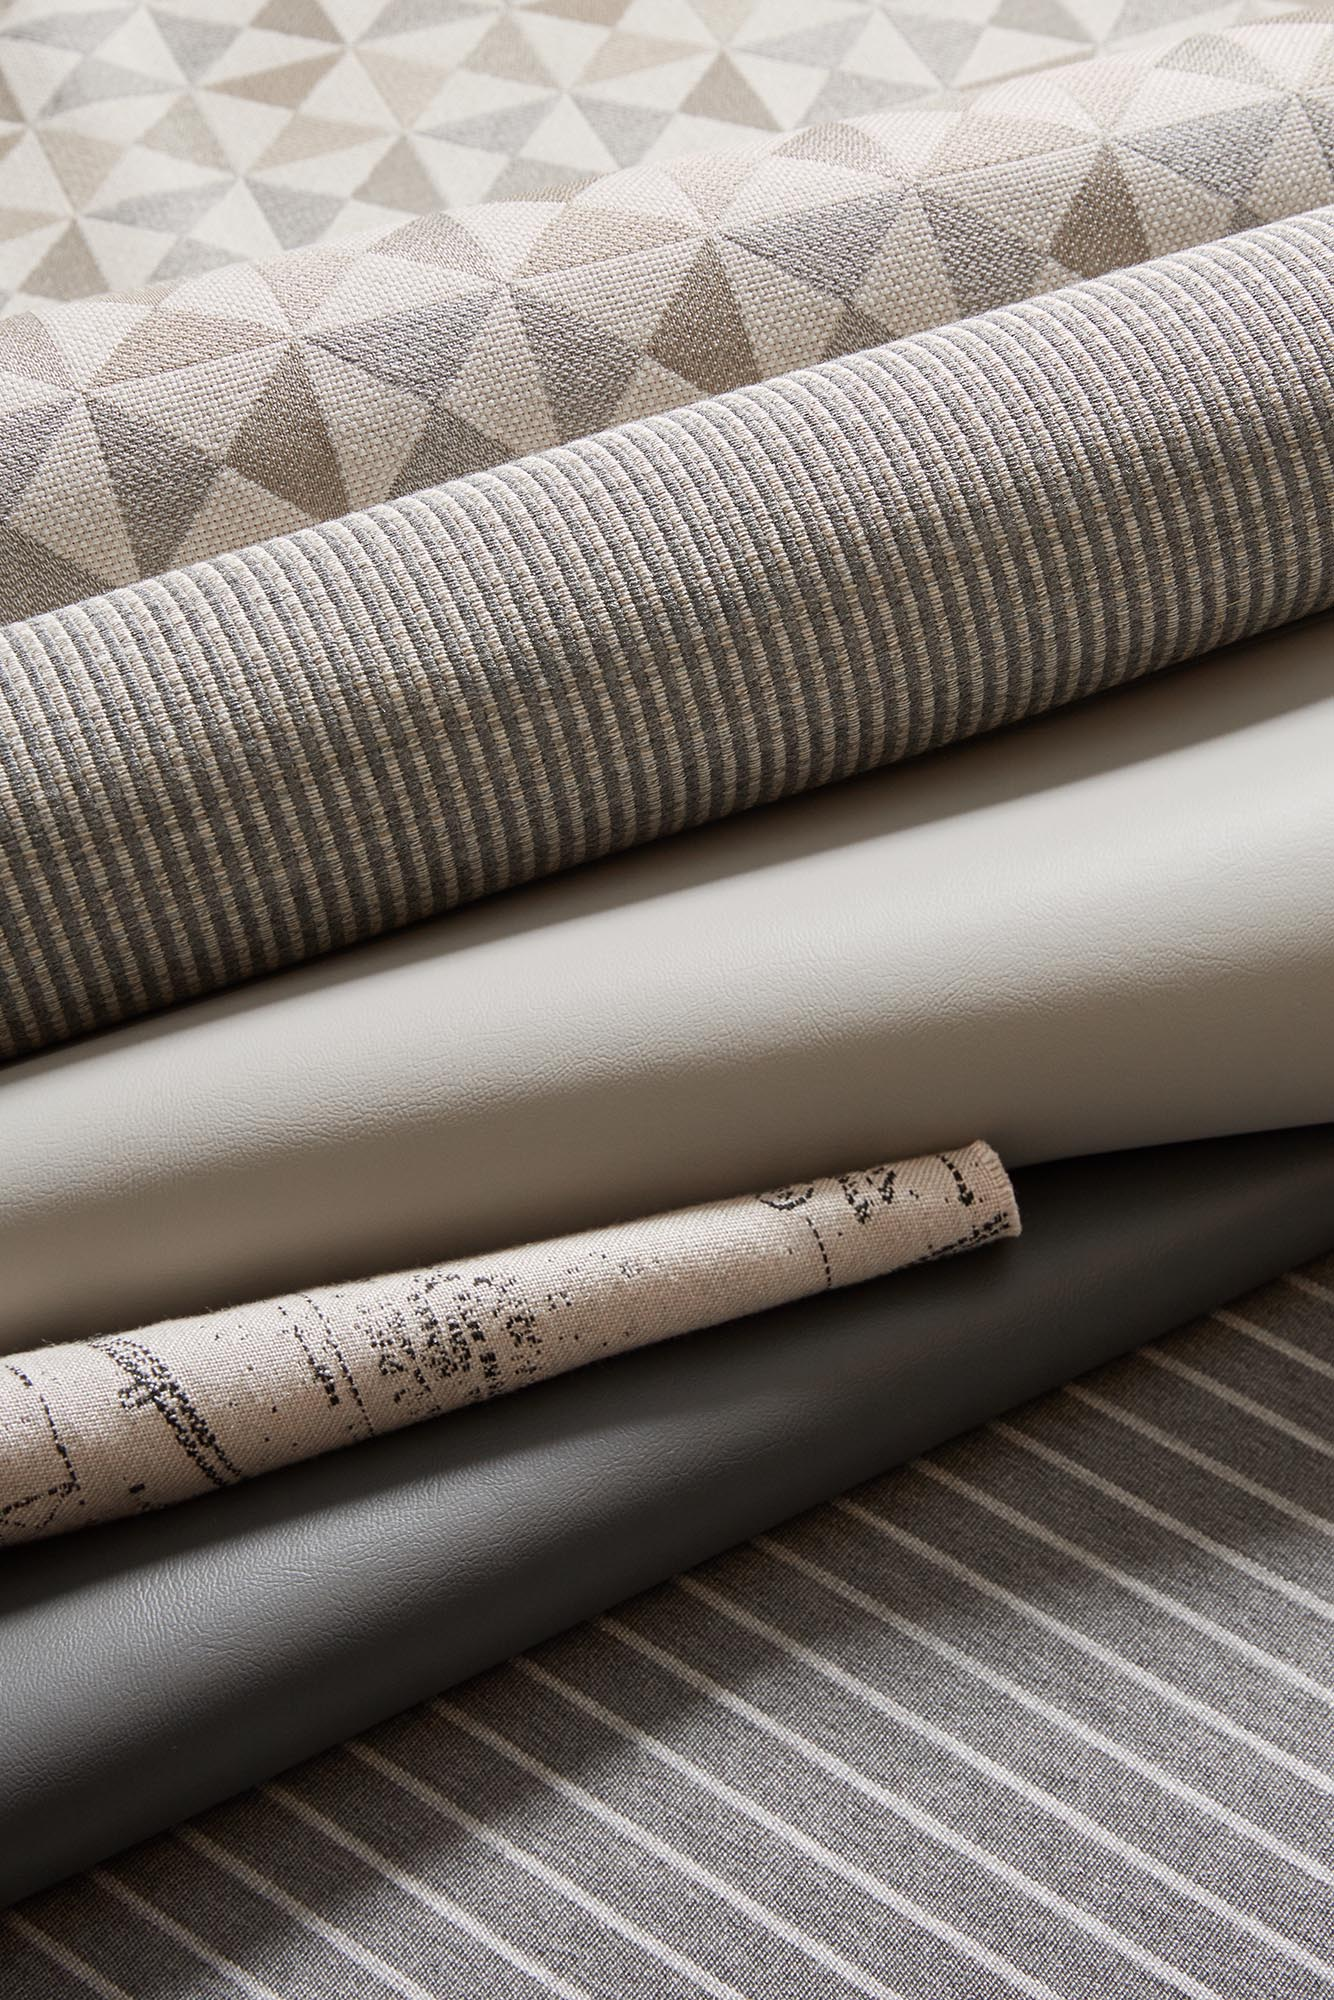 Sunbrella Marine Upholstery Collection, Grey Fabrics